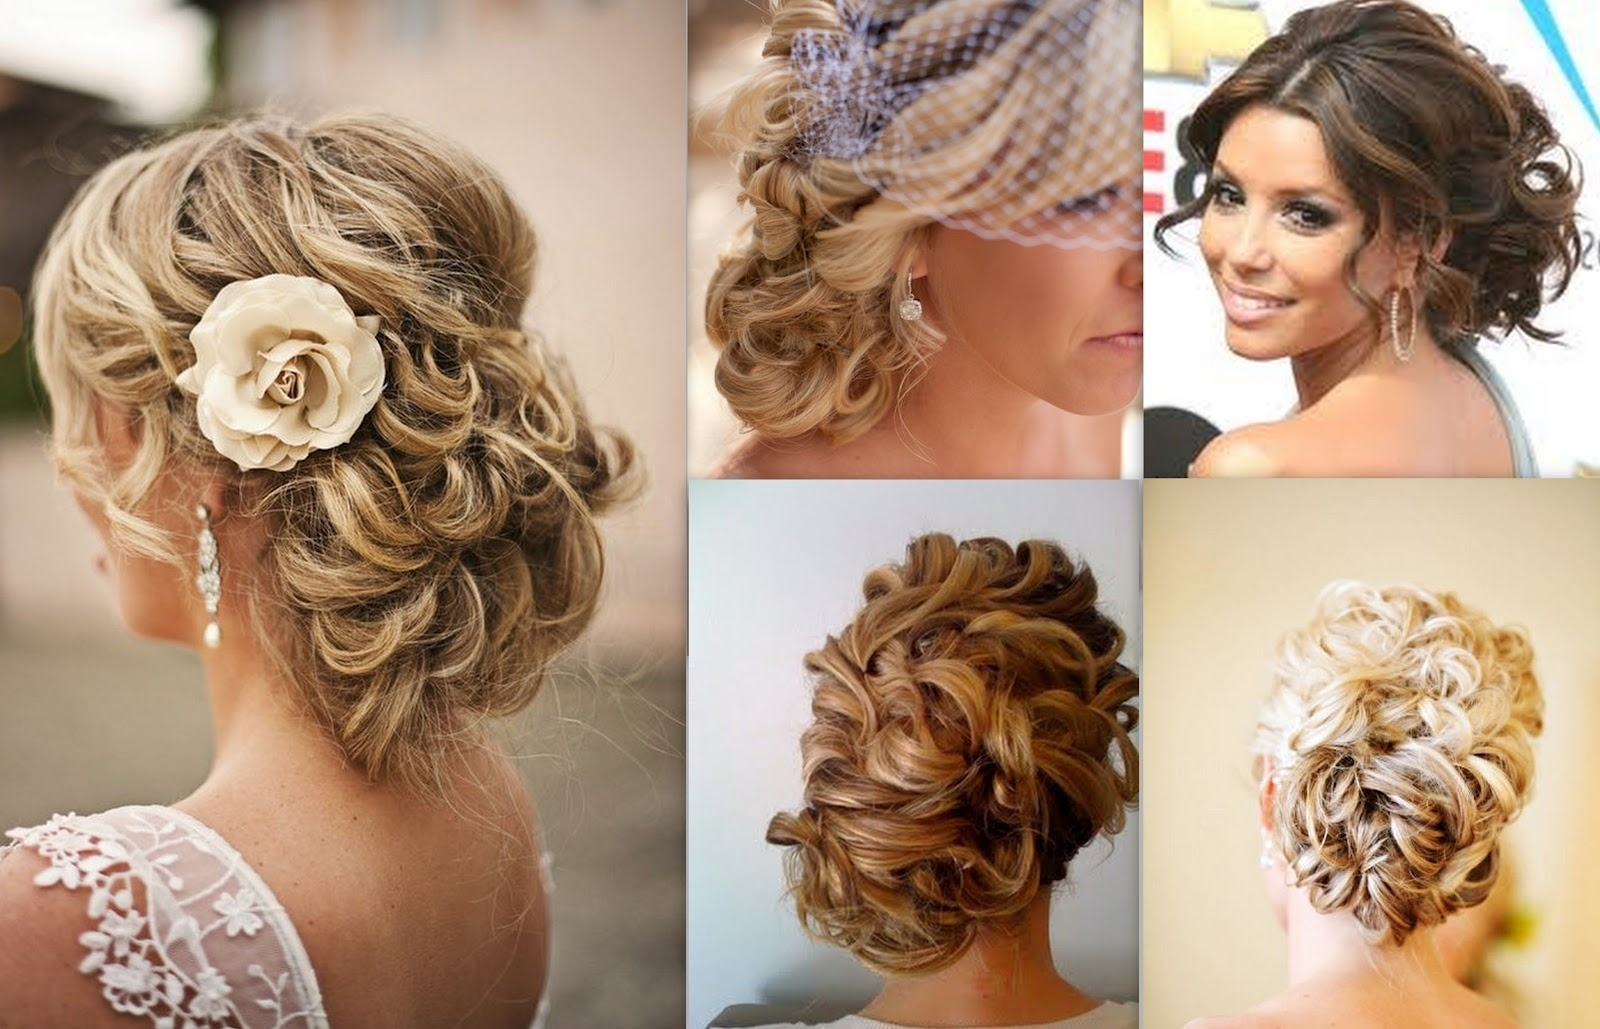 Latest Wedding Hairstyles For Long Hair Extensions For Hair Extensions For Your Dallas Wedding Day (View 7 of 15)